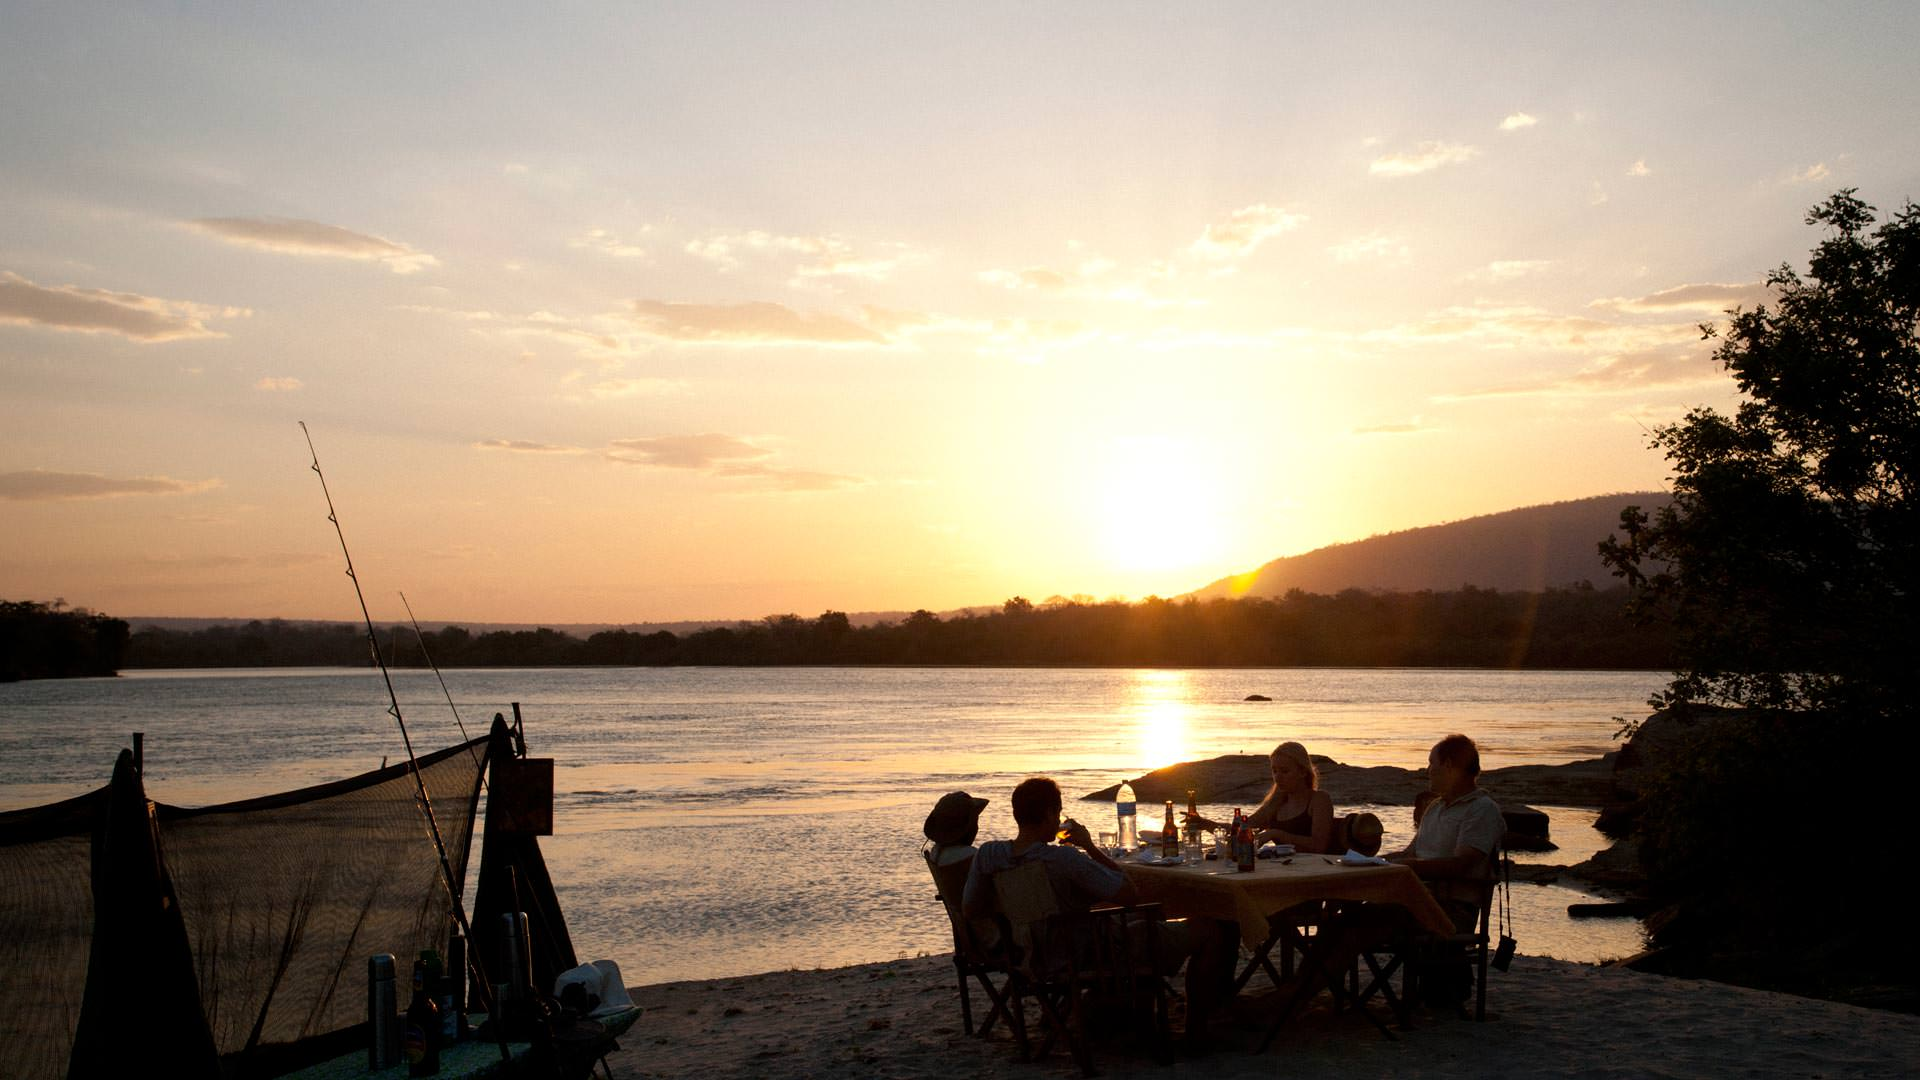 Sundowner on the banks of the Rufiji River